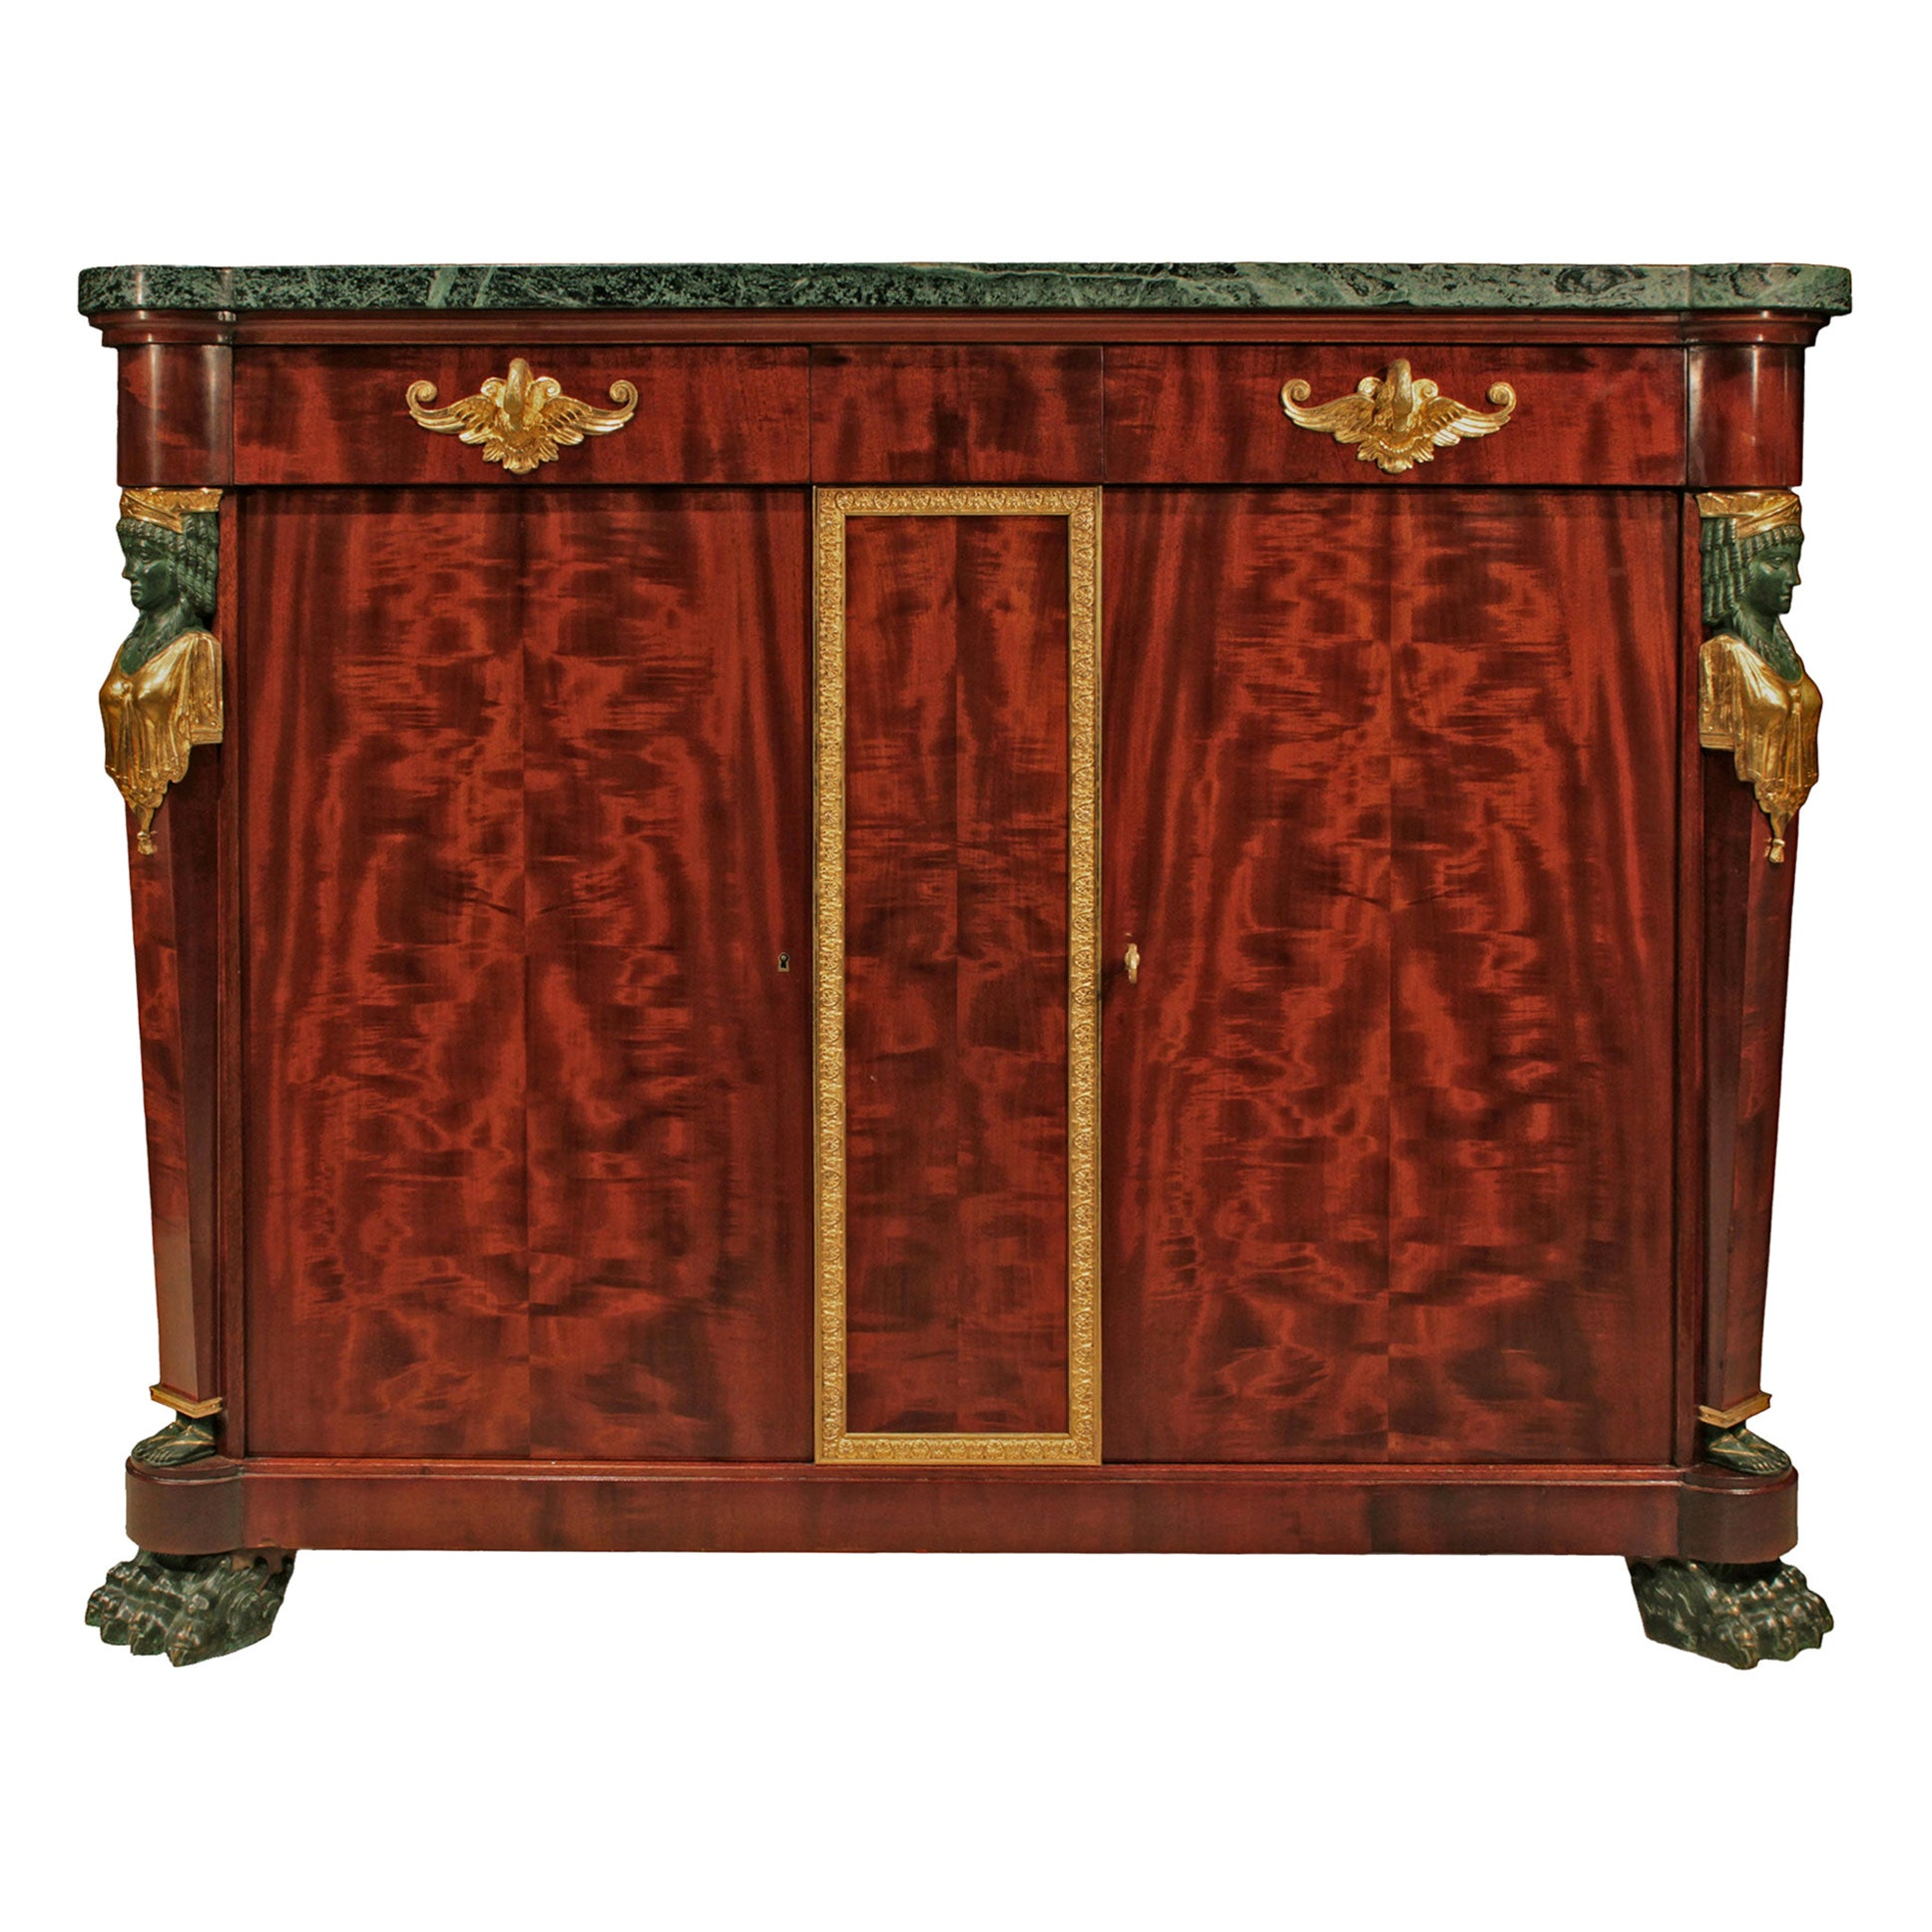 Italian 19th Century Neoclassical Style Mahogany, Bronze and Ormolu Buffet